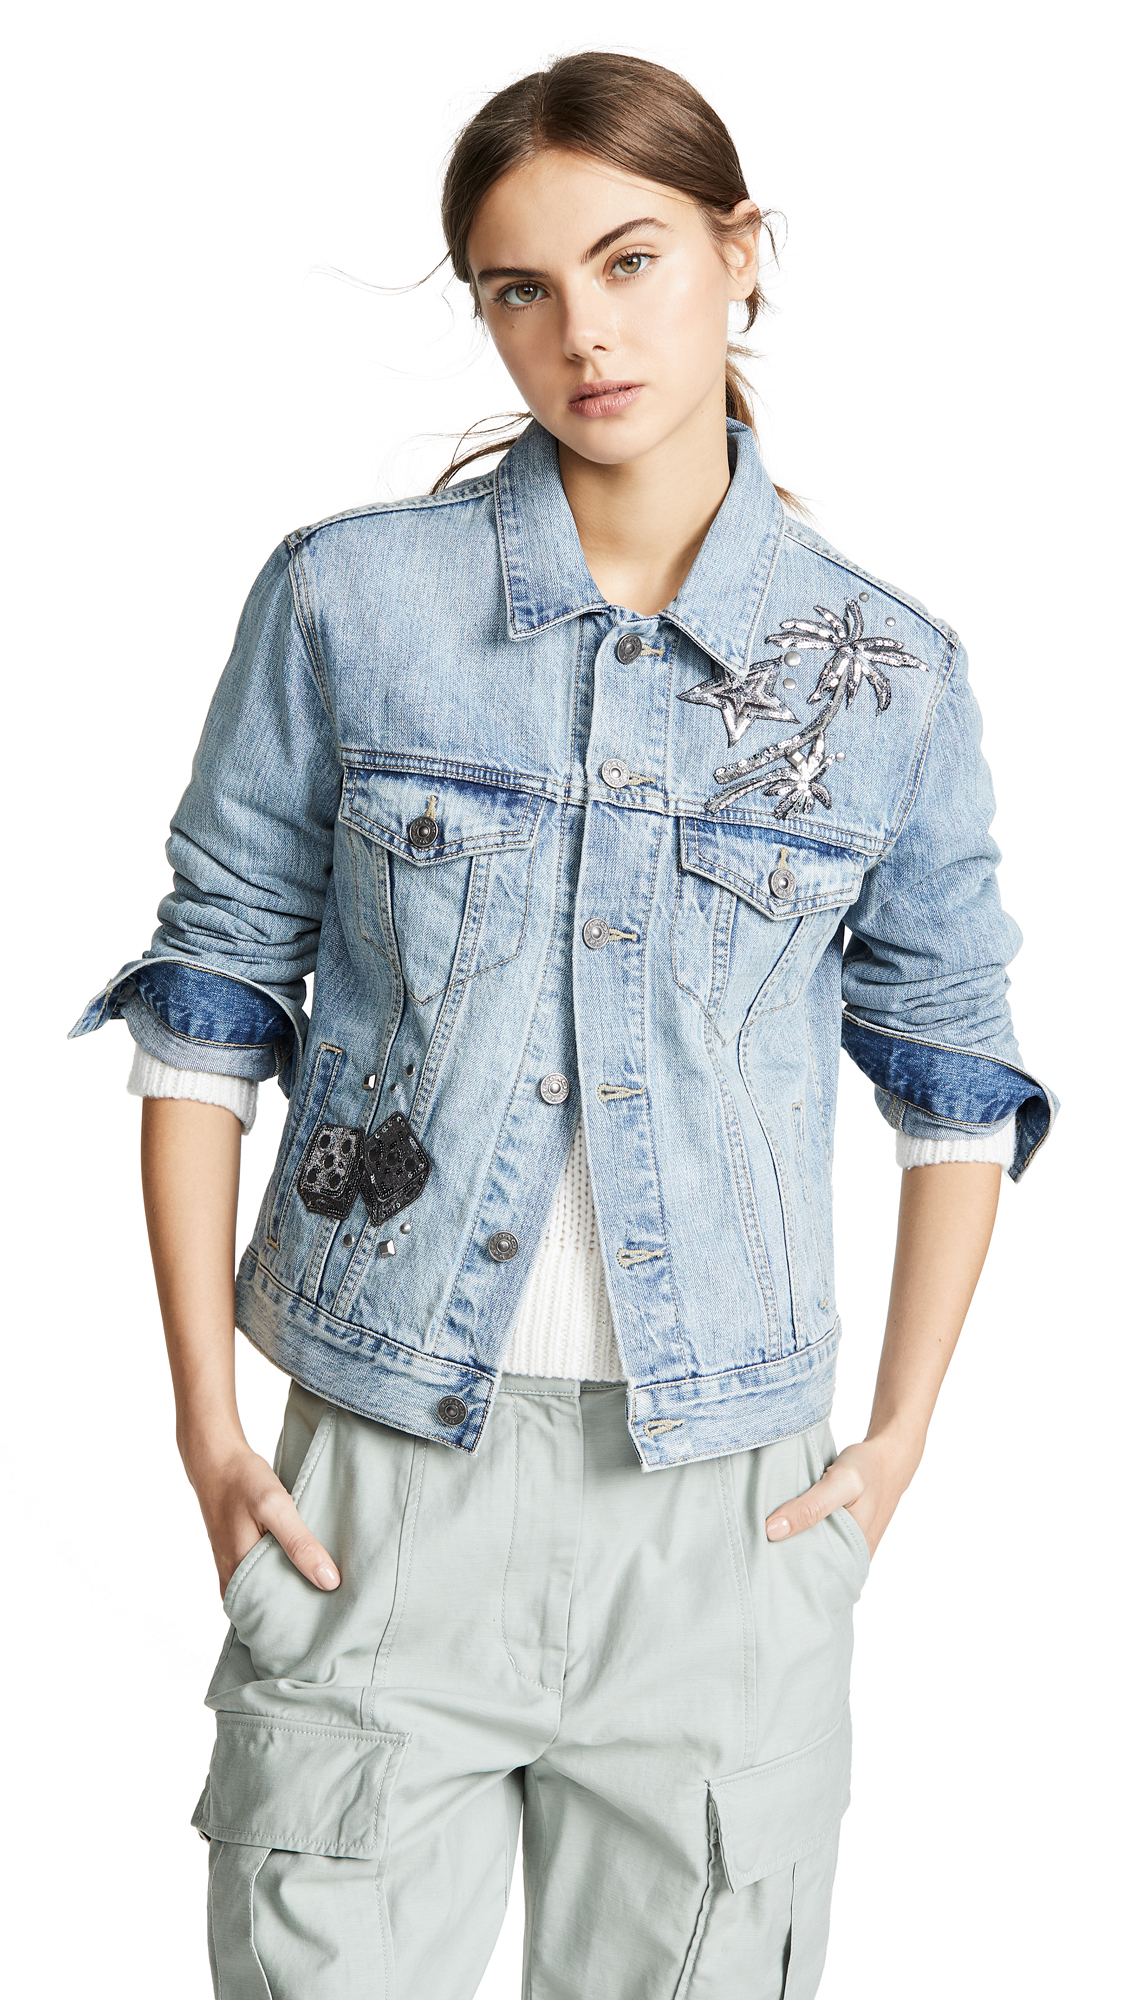 Coach 1941 Embellished Denim Jacket - Blue